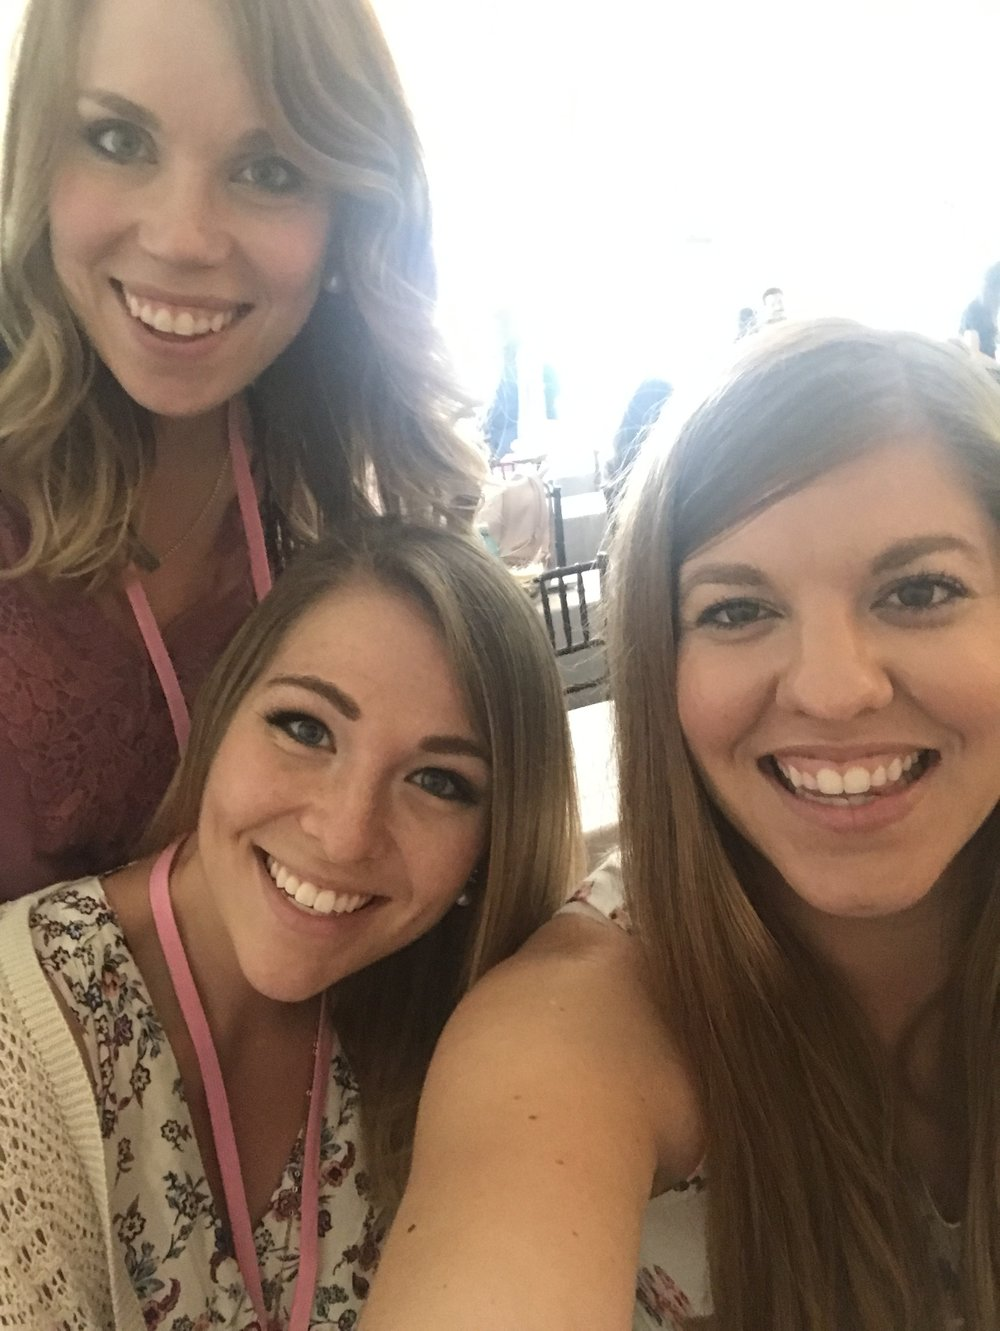 Speaking of connections... - I can't close out this post without a few pictures of the lovely boss ladies and new friends who I had the privilege of sharing an Airbnb with that weekend.  I'm excited to cheer these ladies on and continue to see what they do in their businesses and lives.  They are awesome!